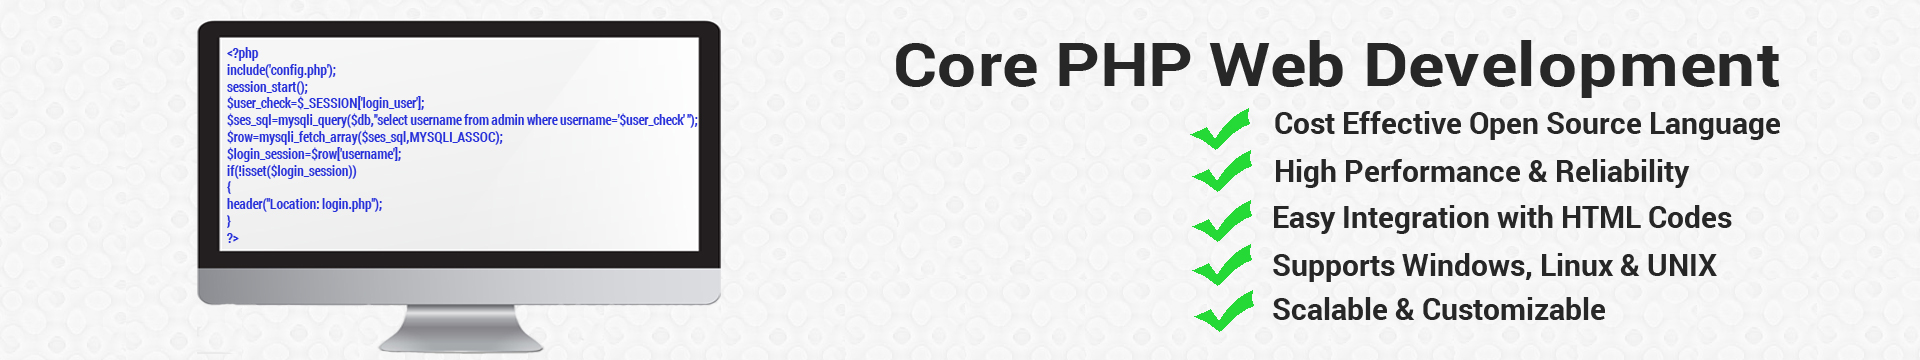 Core PHP Web Development